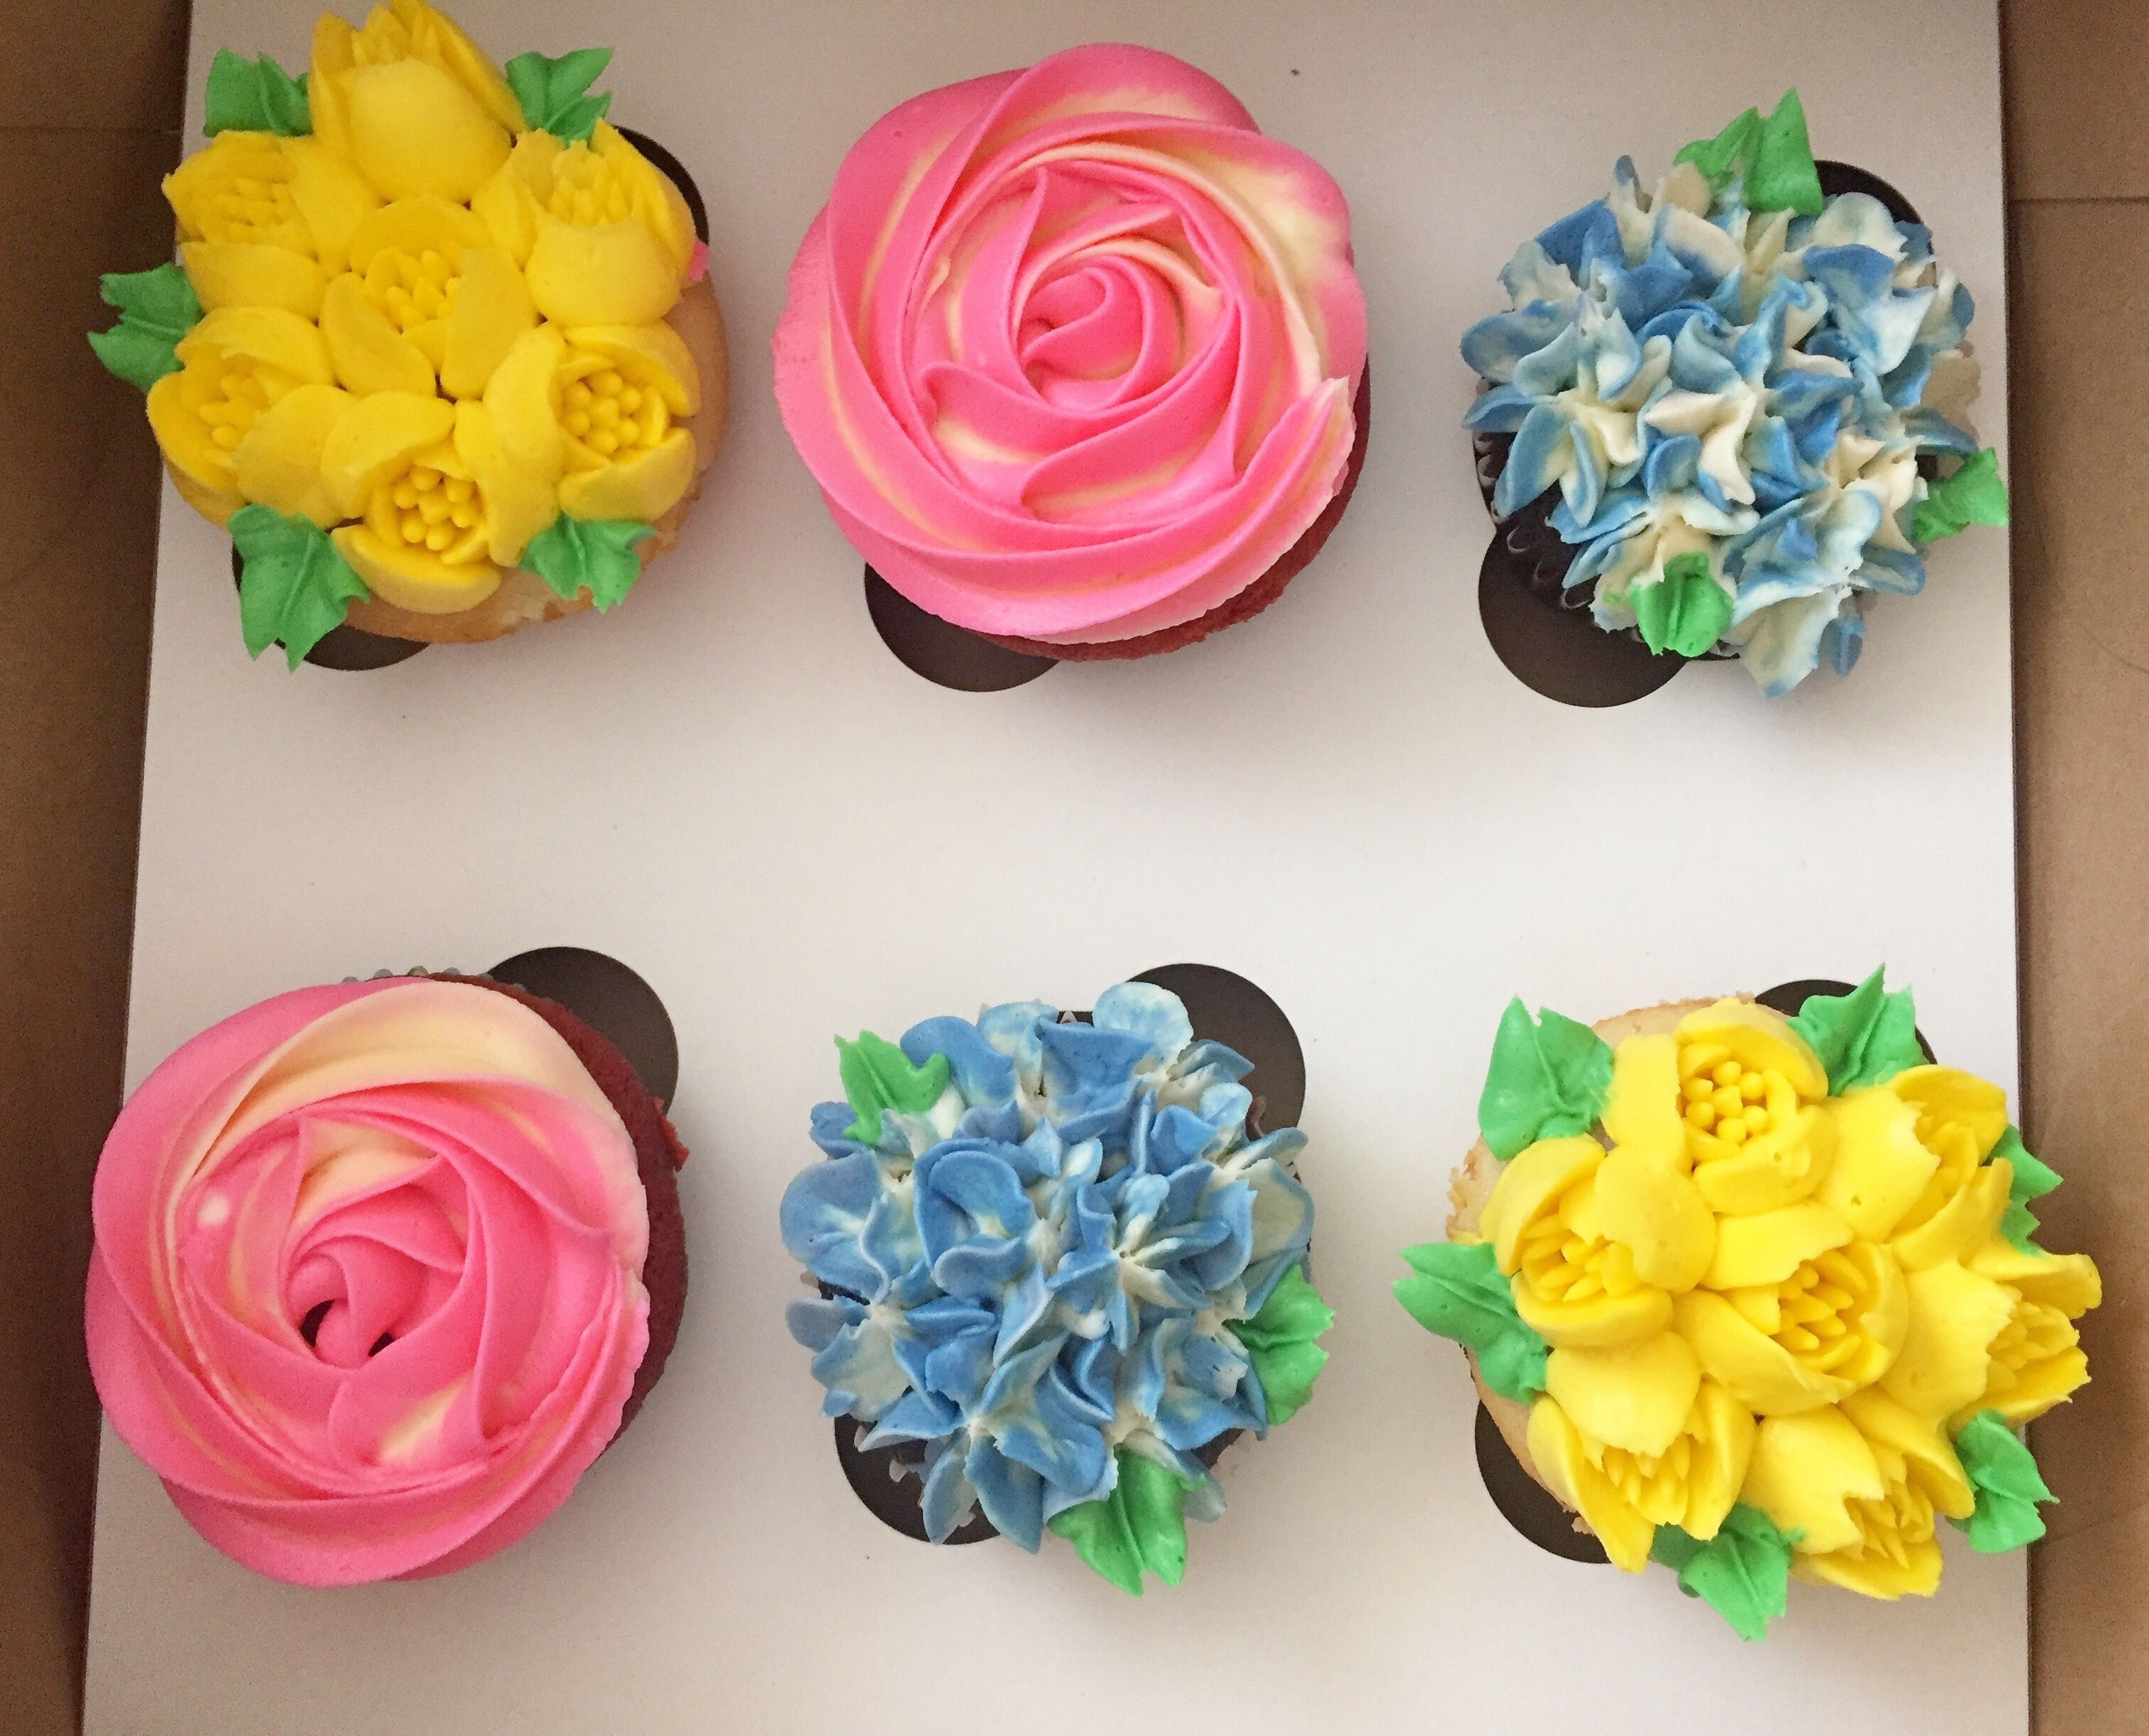 Hydrangea tulip and rose floral cupcakes for motherus day created